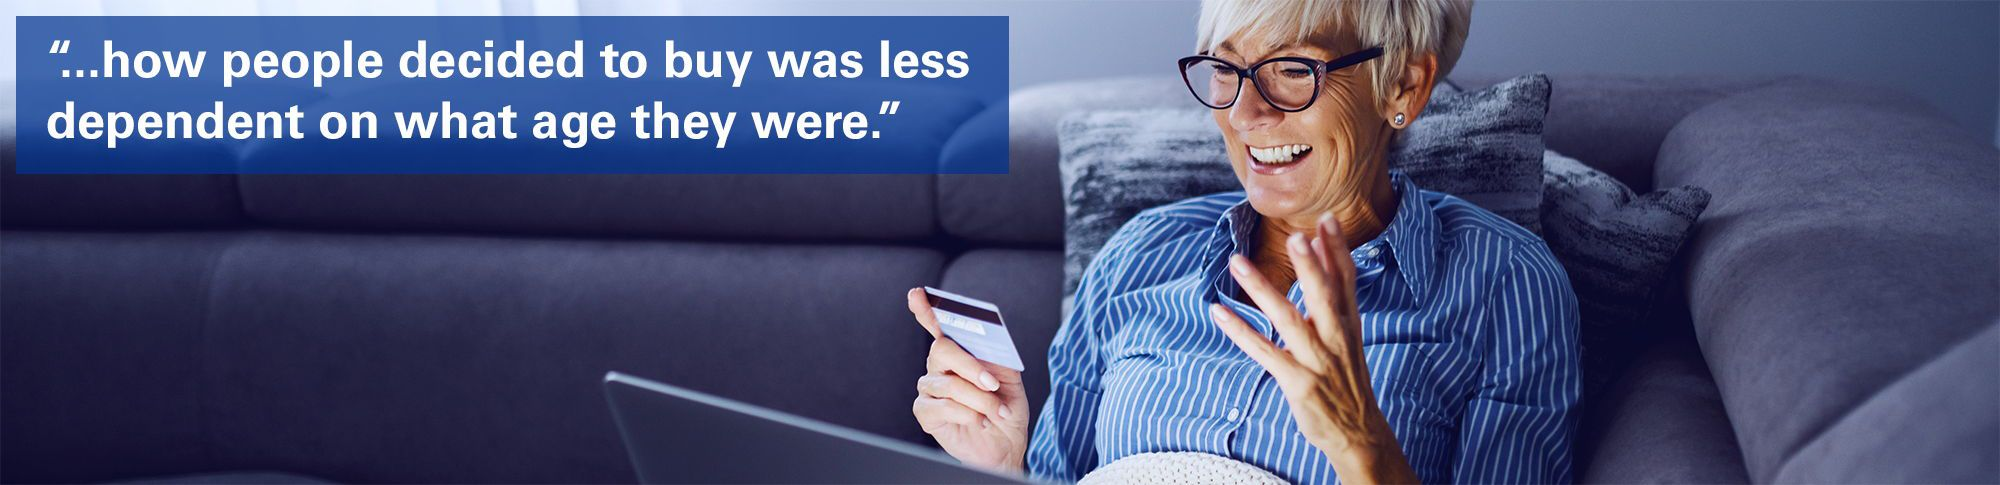 """Woman shopping online with text overlaid """"how people decided to buy was less dependent on what age they were."""""""